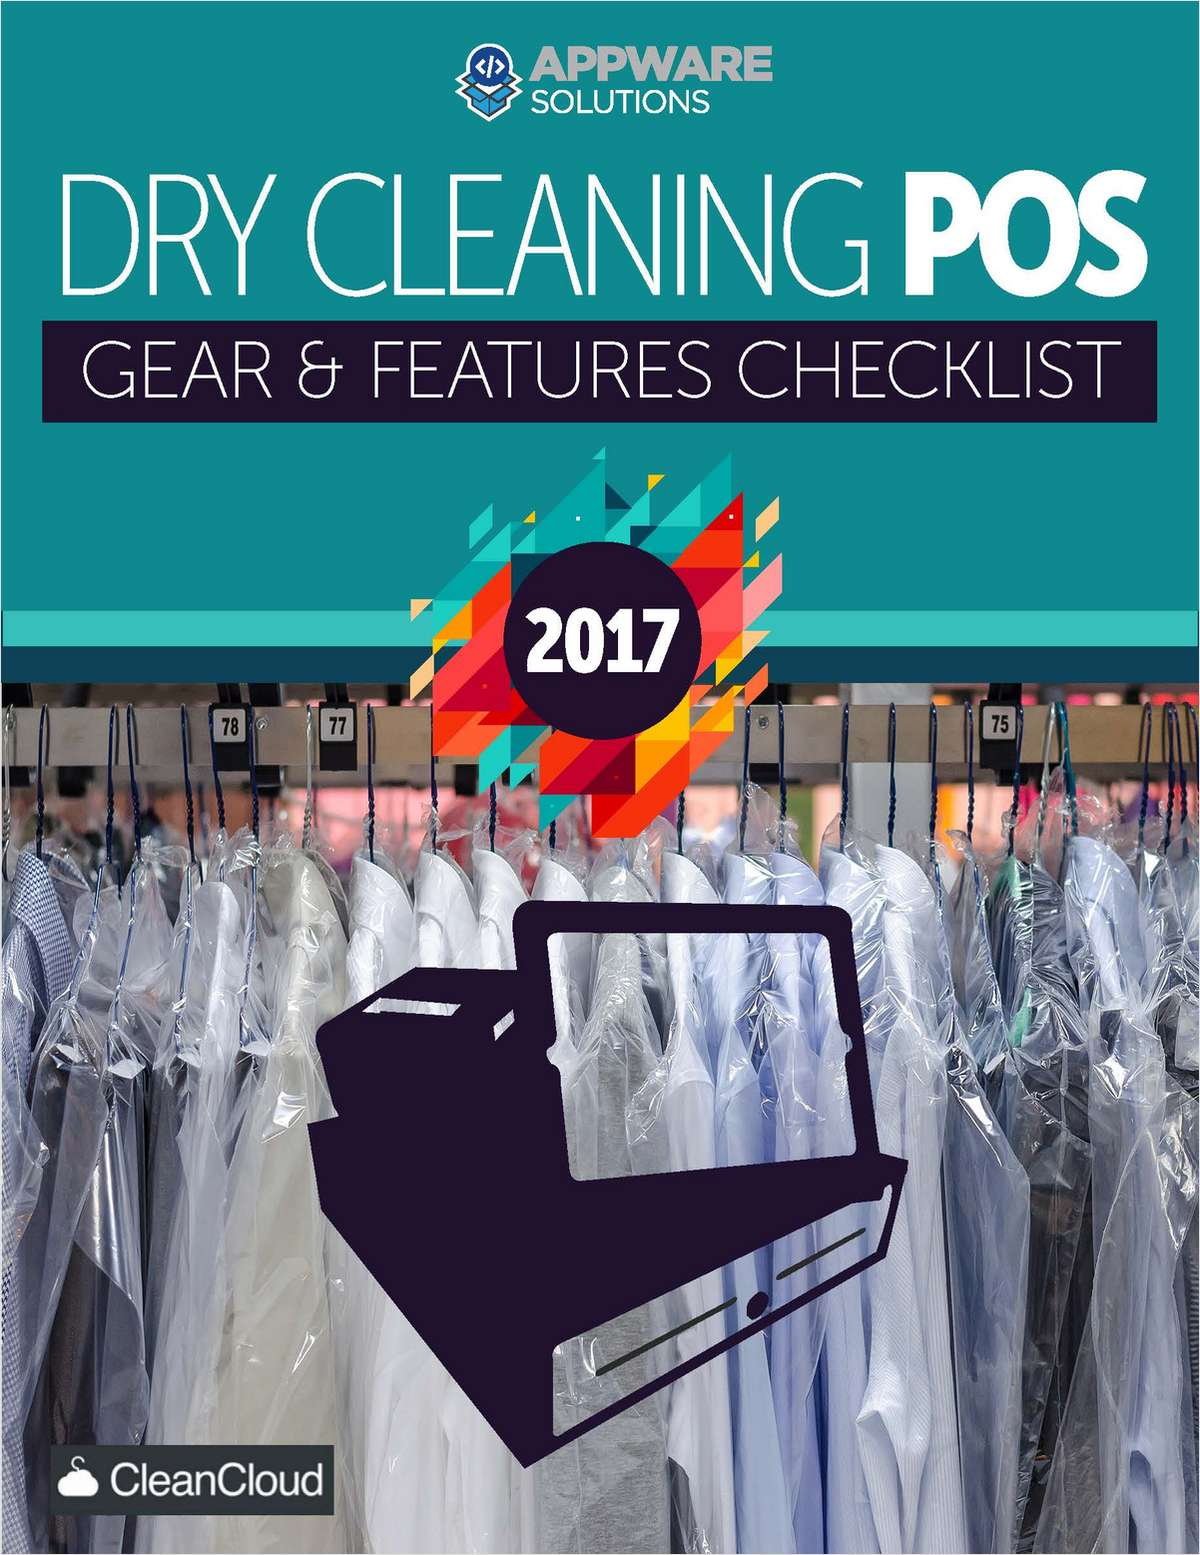 Dry Cleaning Point of Sale Gear & Features Checklist